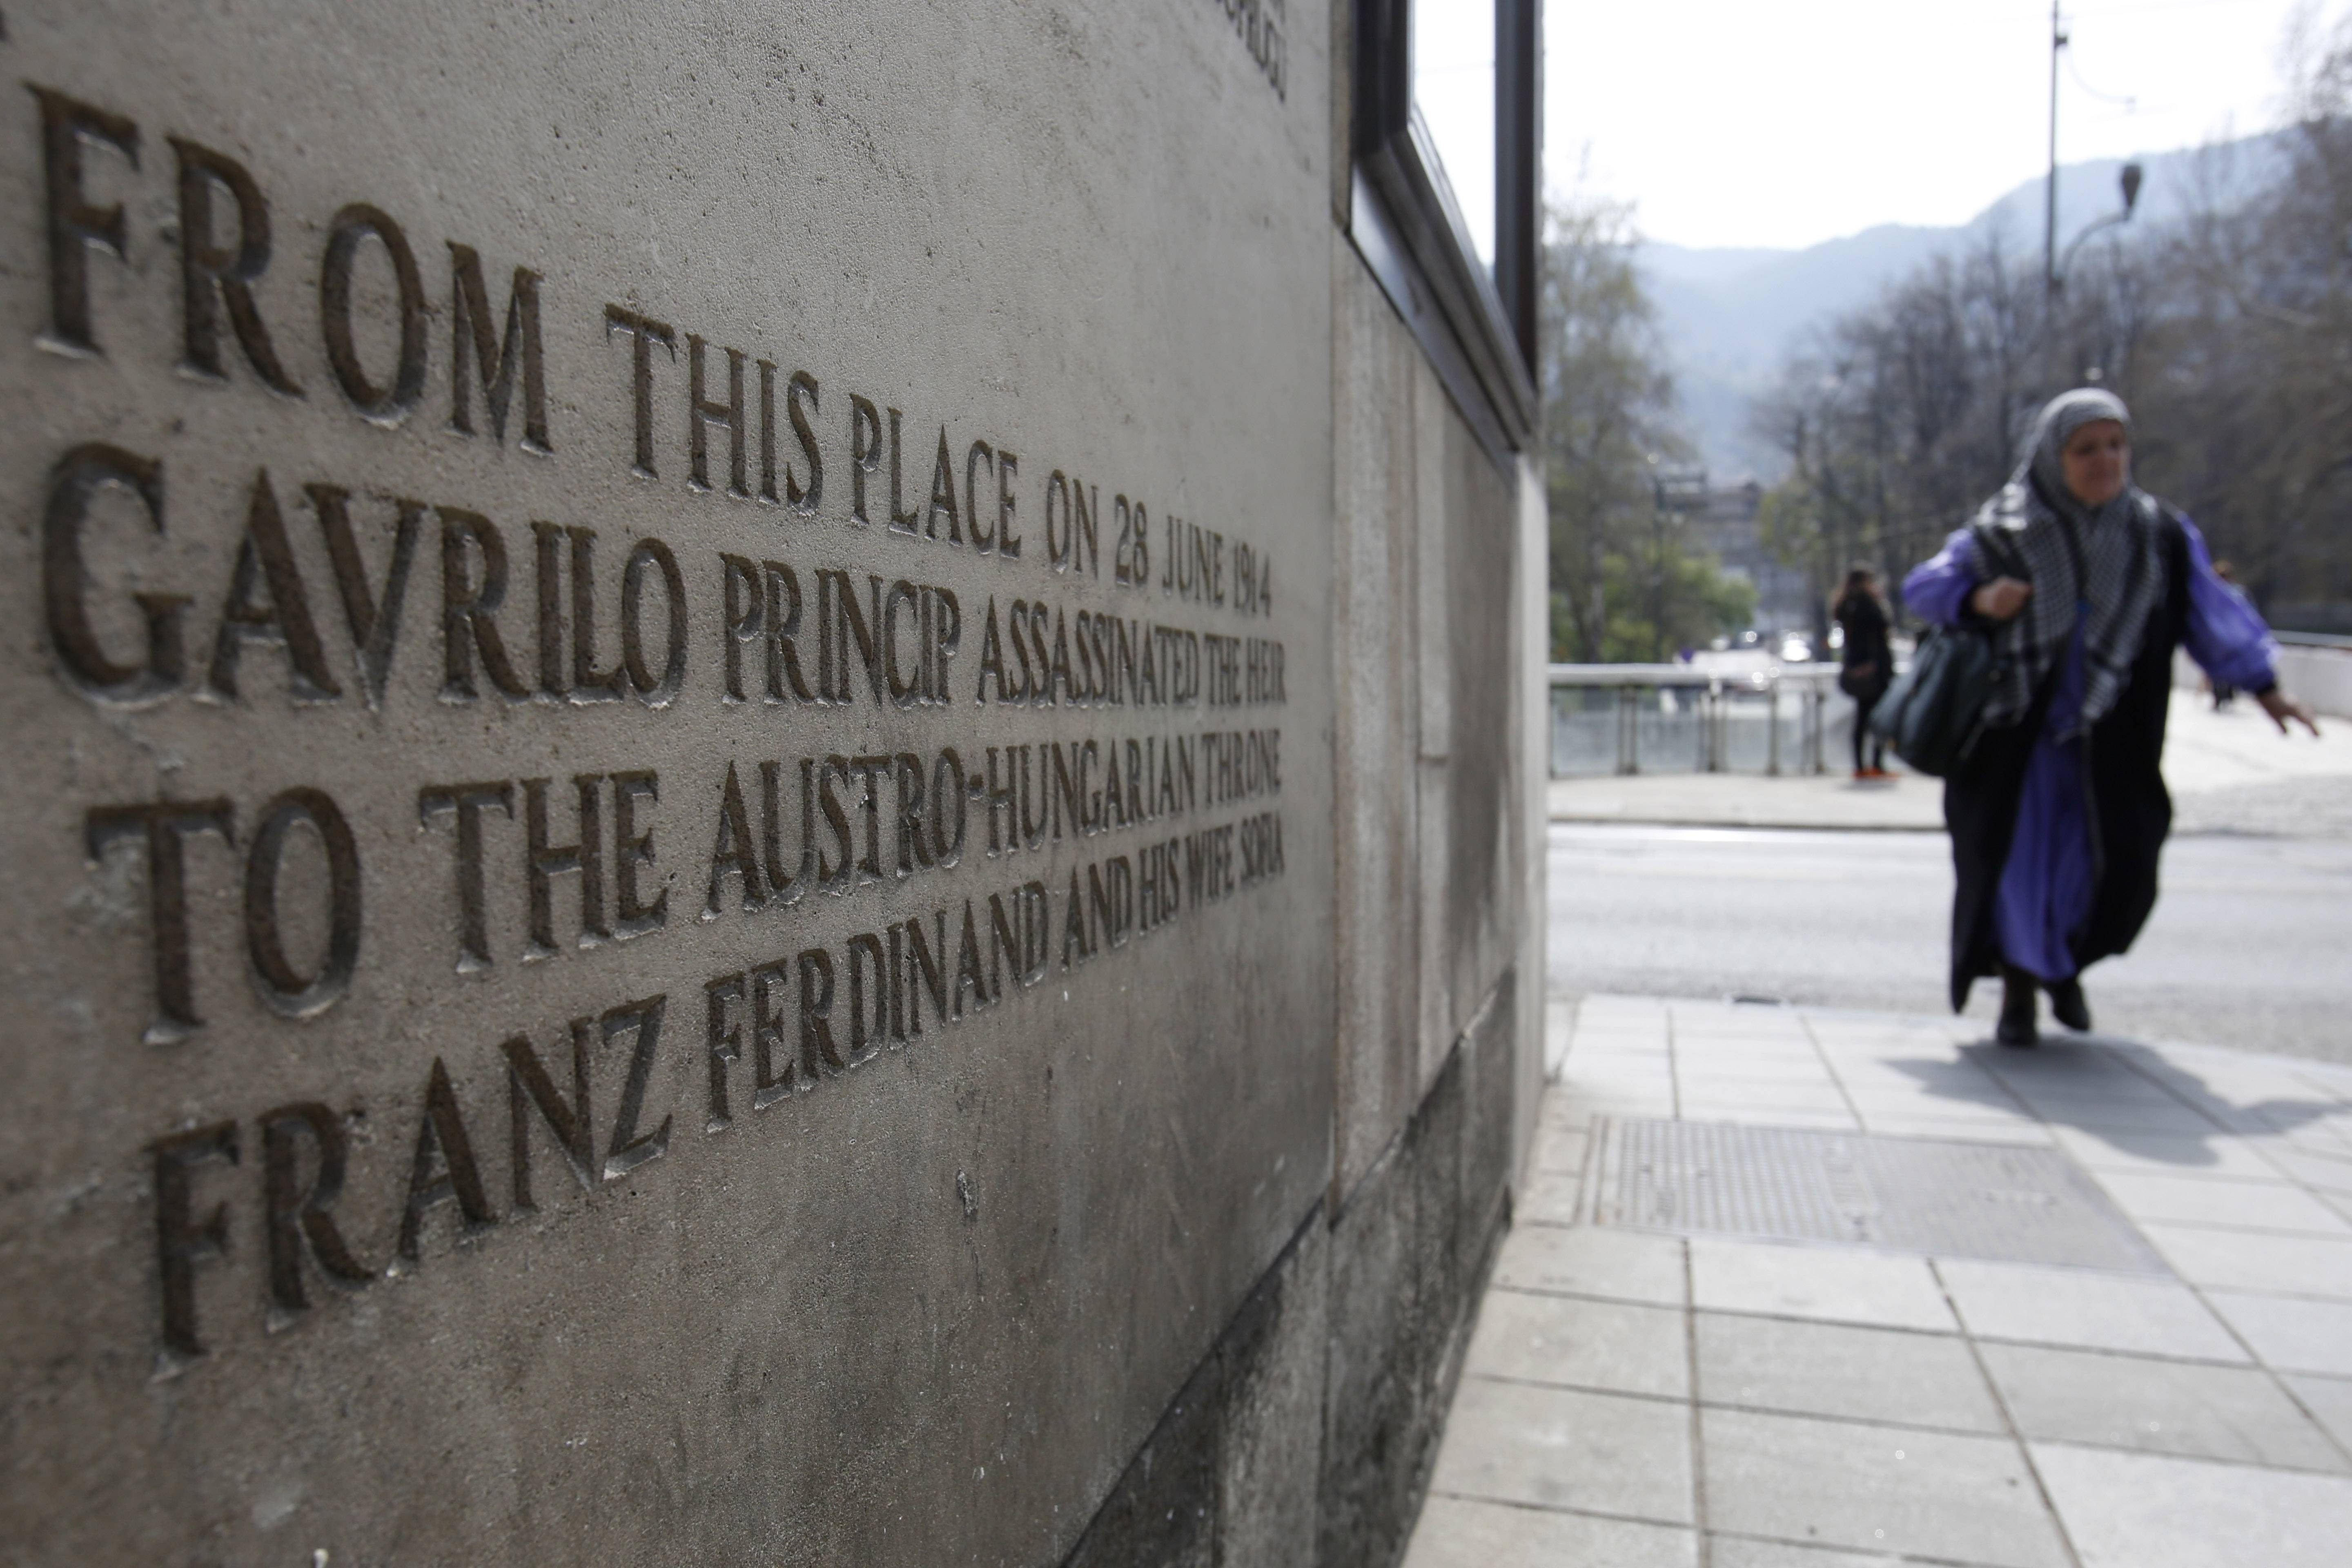 A Bosnian woman passes by the corner where Gavrilo Princip fired the bullet that killed the Austro-Hungarian Empire's crown Prince Franz Ferdinand on June 28, 1914. The assassination soon set in motion a series of events that would eventually lead to World War I.